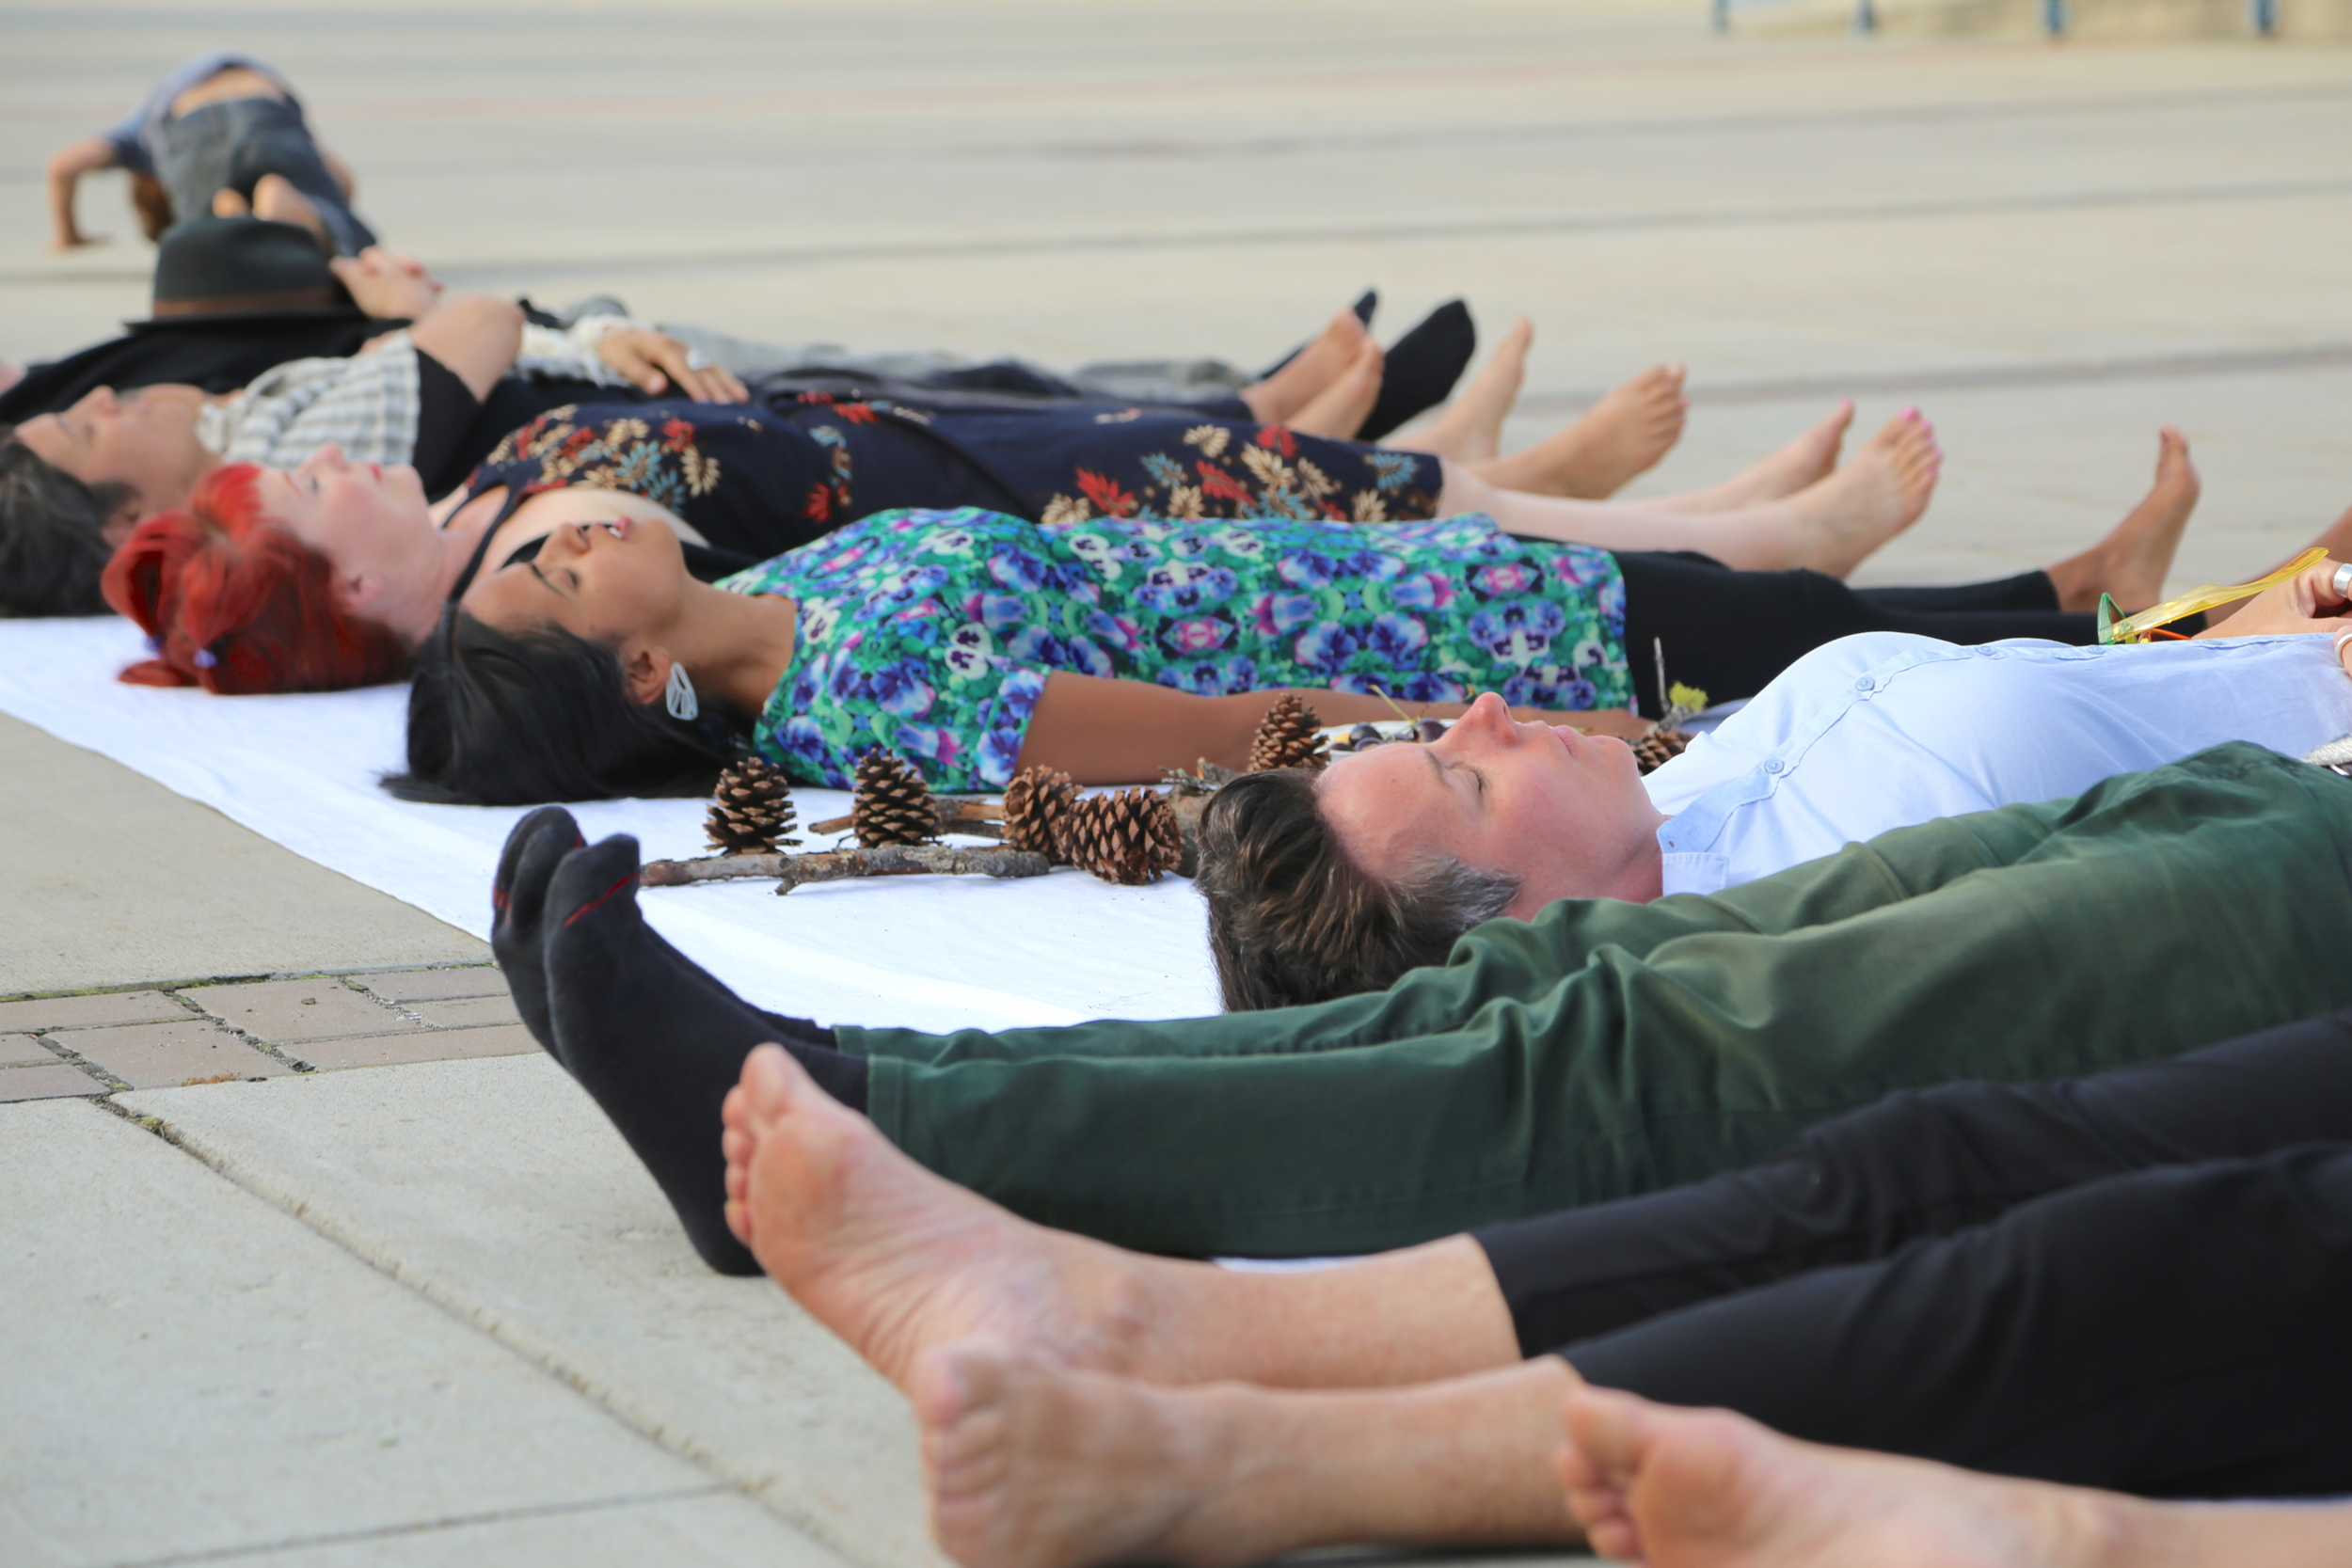 Shifting our bodies in public space: a laying meditation acknowledging the body, land and nourishment.